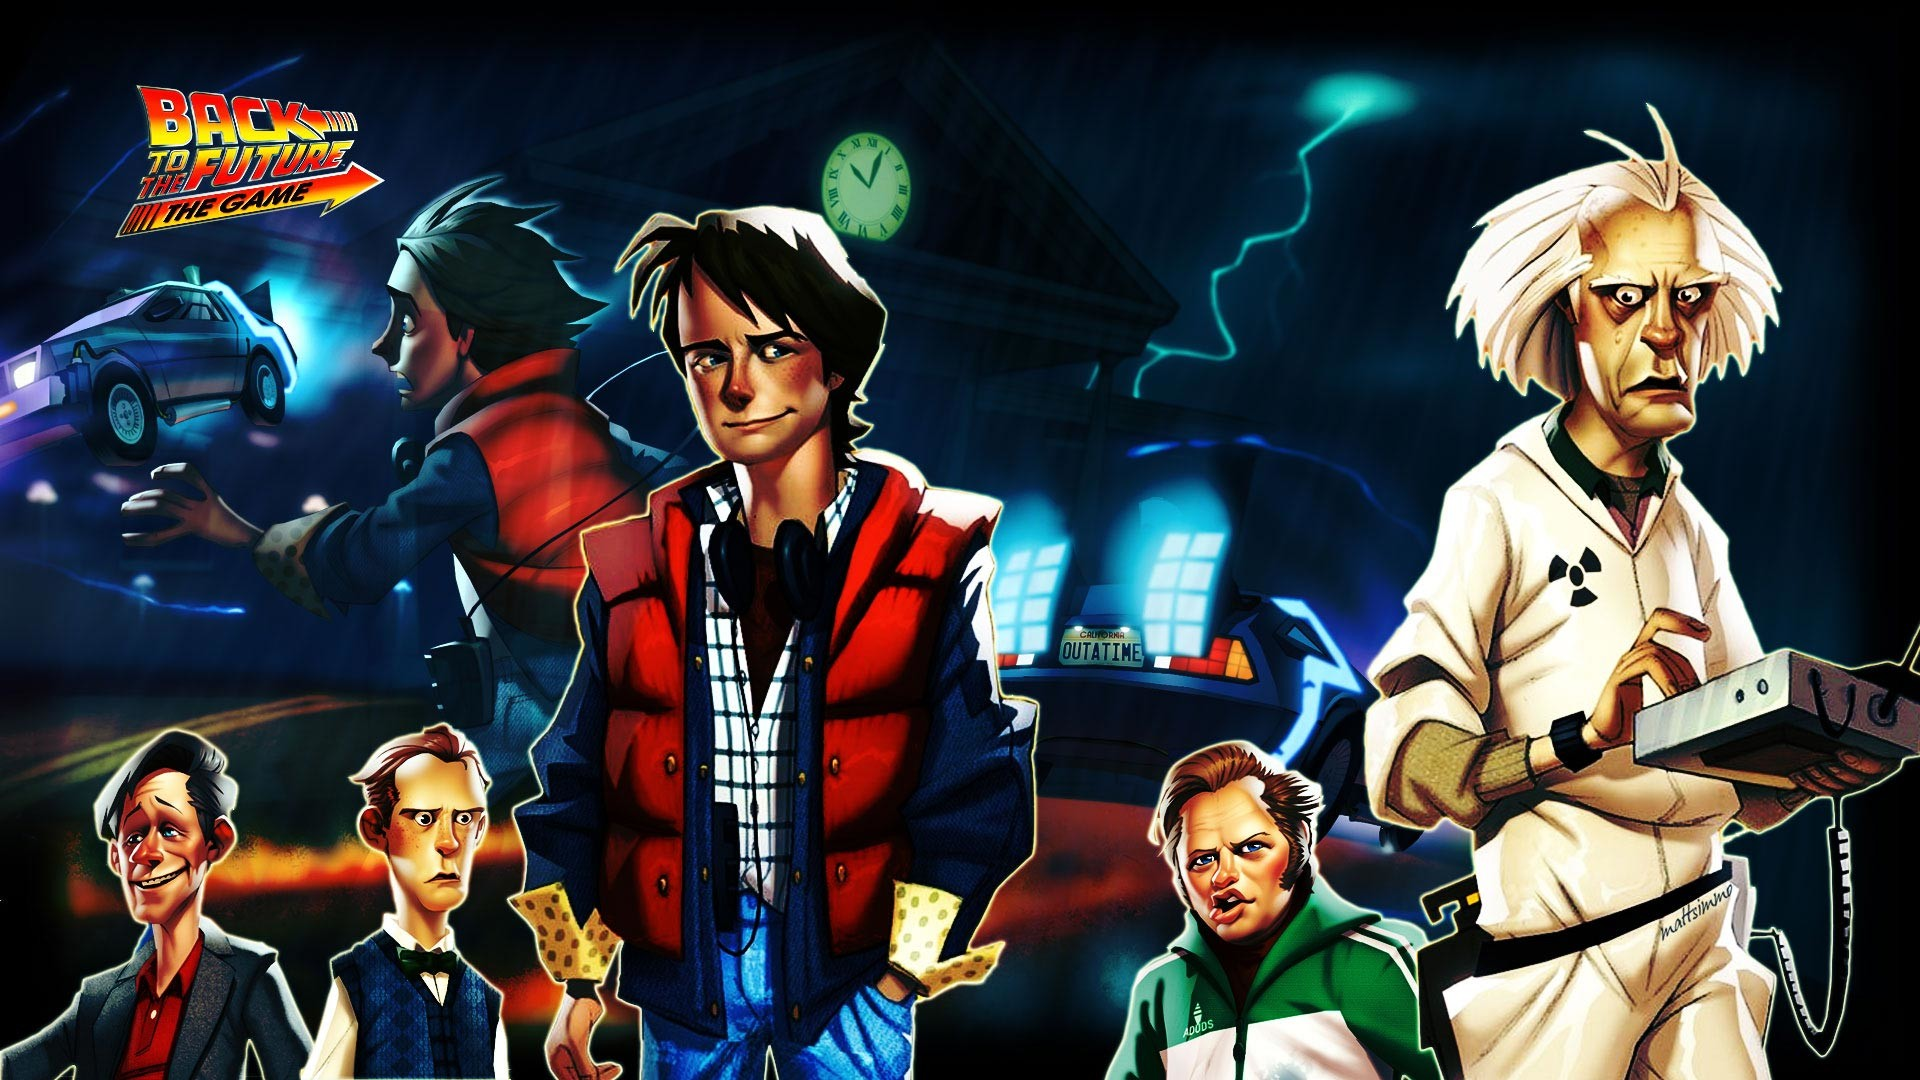 1920x1080  Wallpaper back to the future the game, telltale games, pc, ipad,